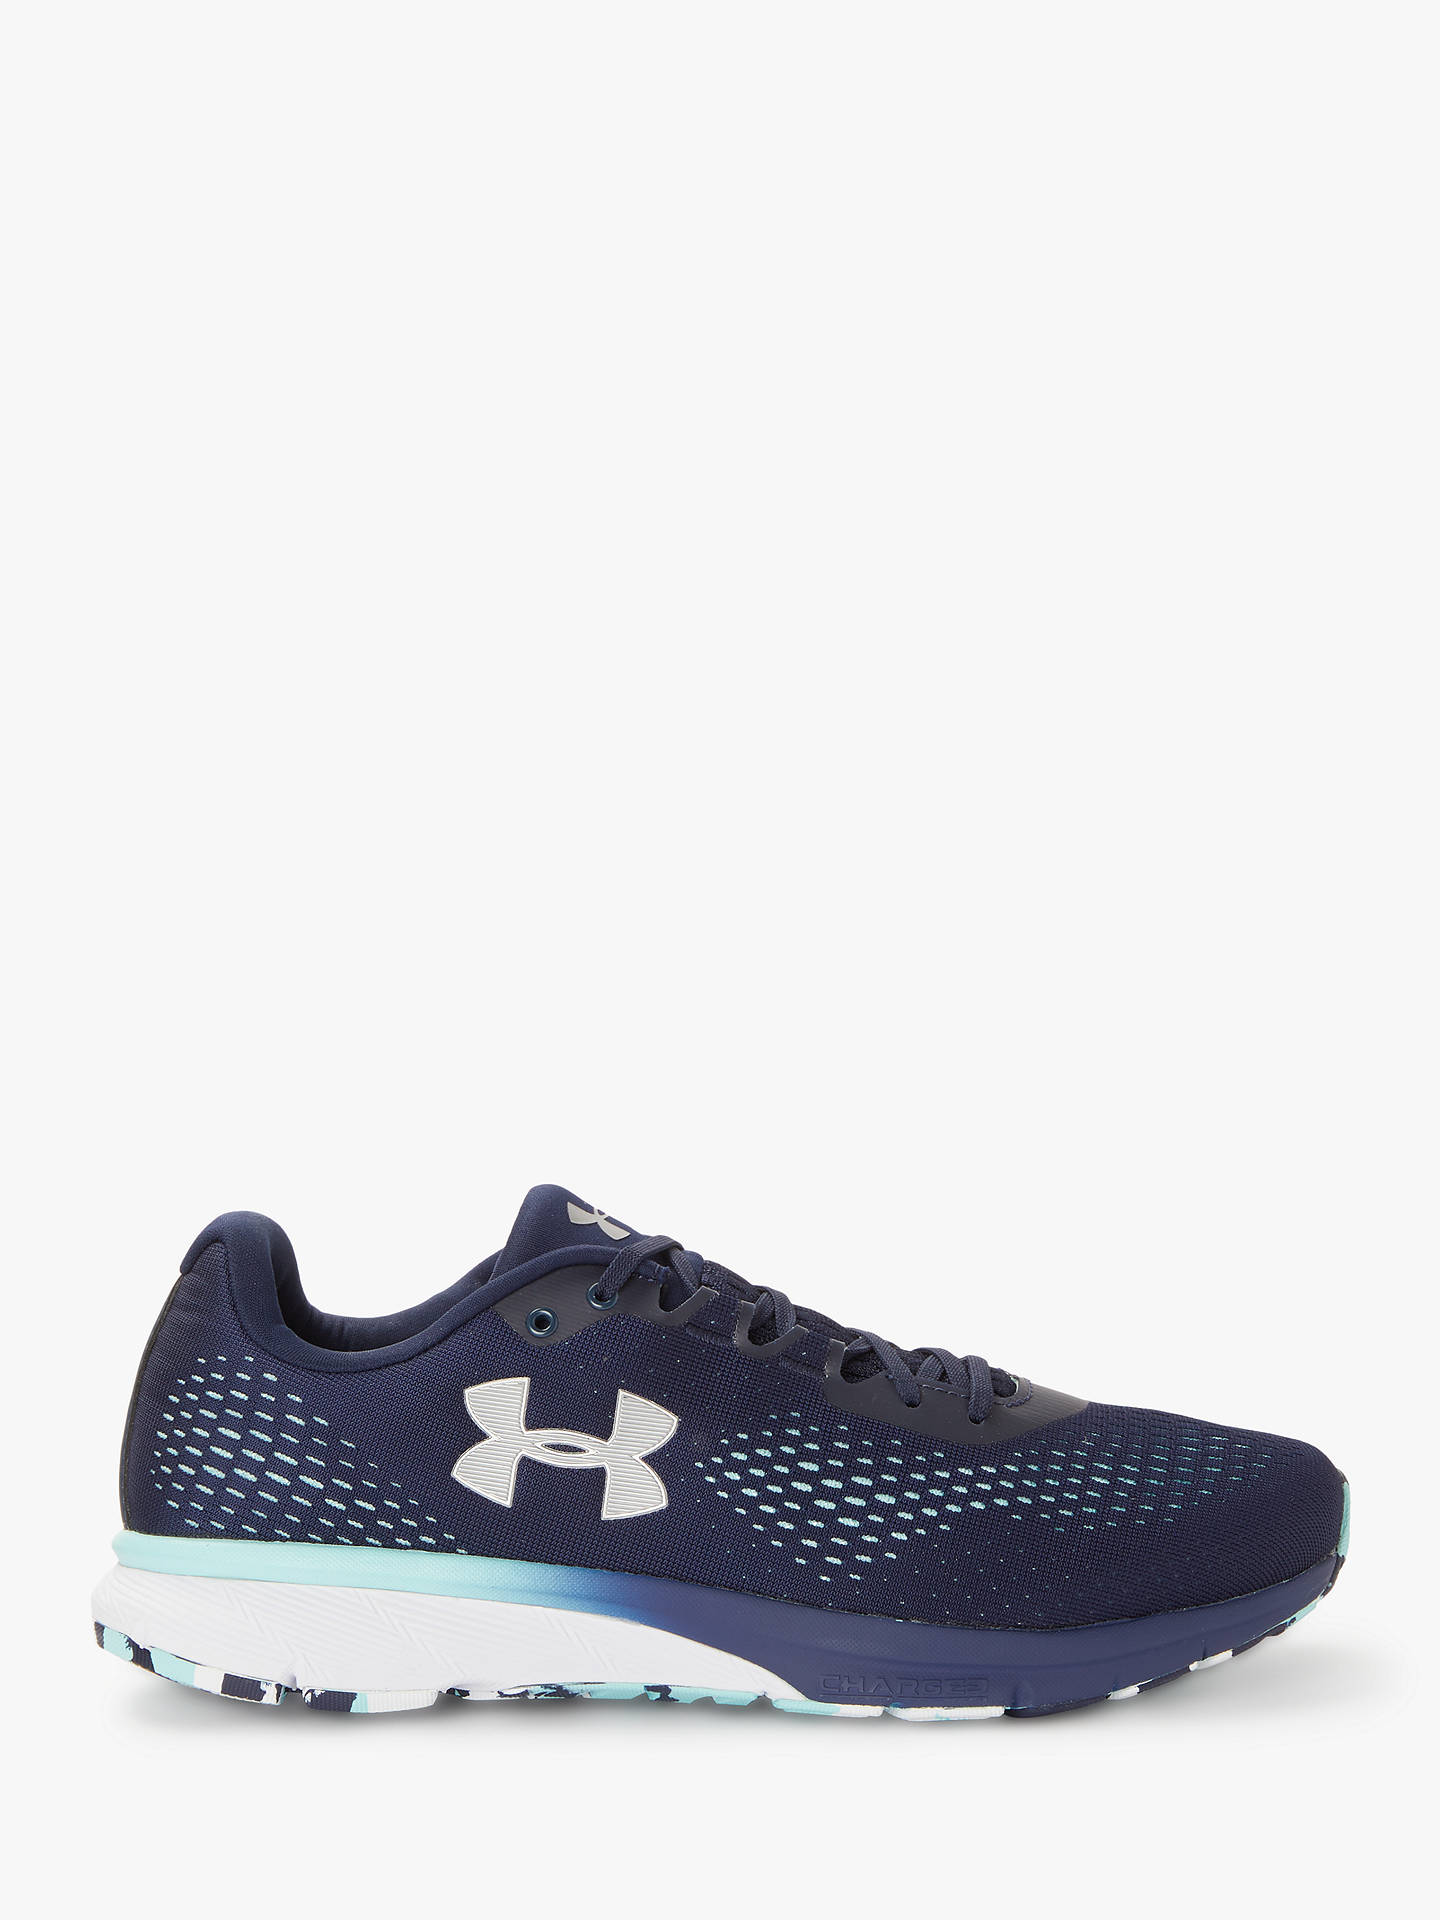 BuyUnder Armour Charged Spark Women s Running Shoes 4043774e7